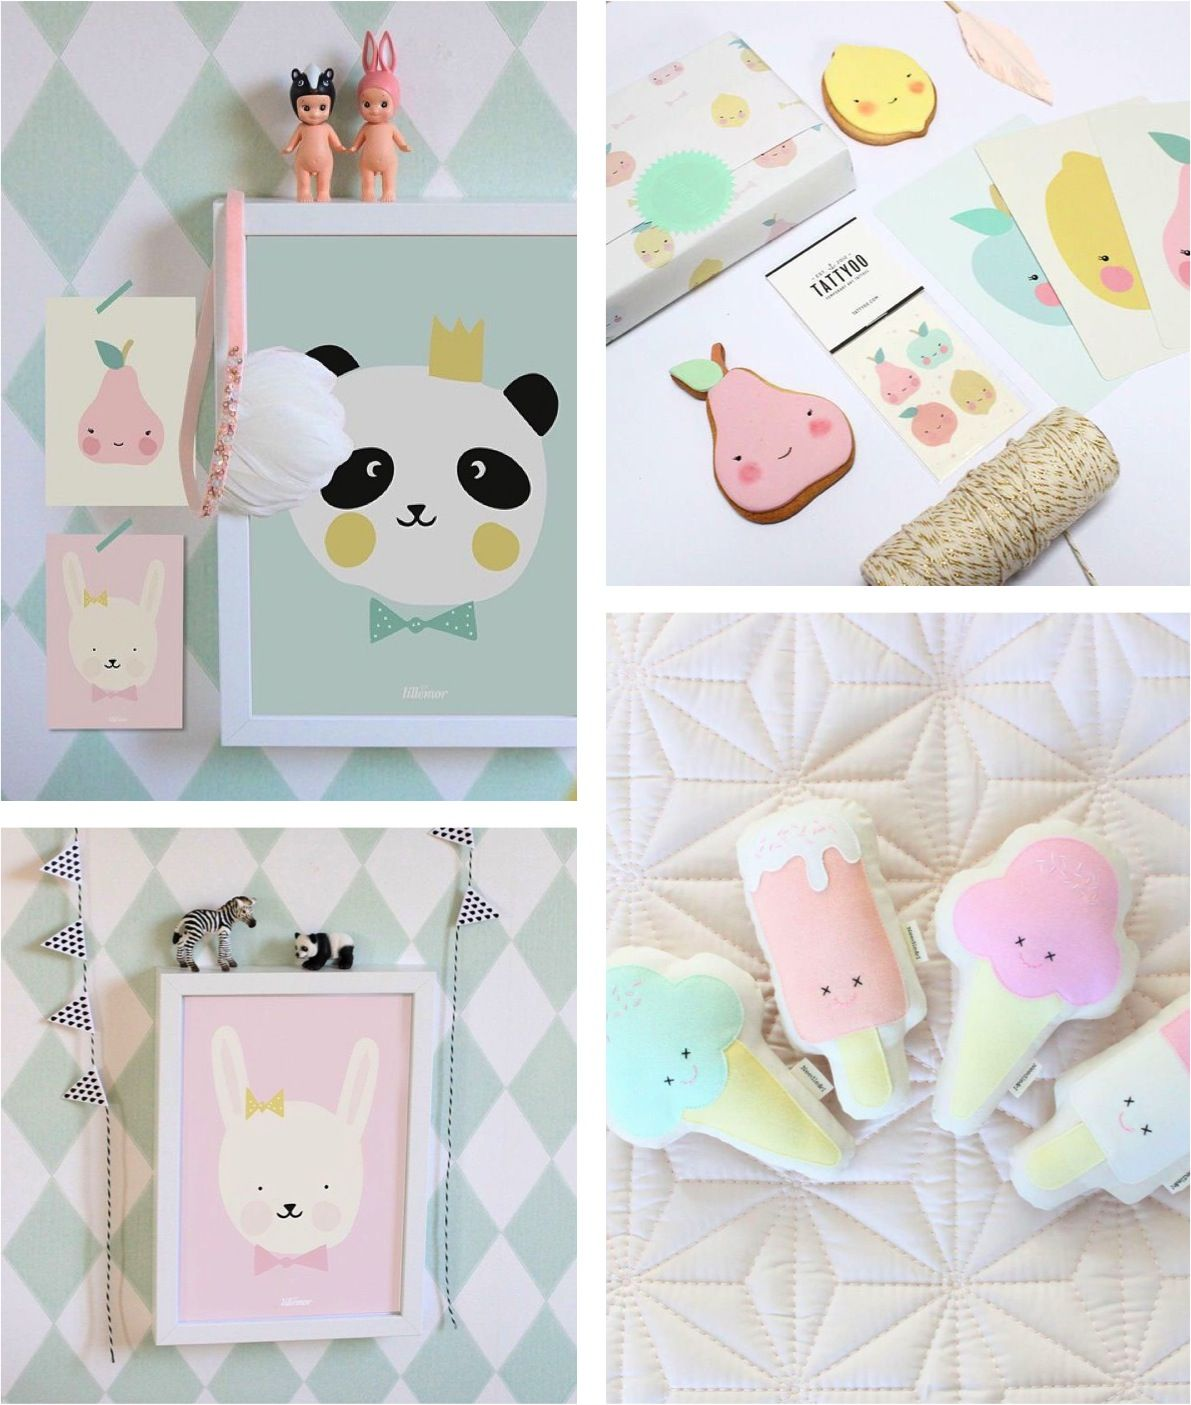 Pastel Colors Kids Room: The Cutest Pastel Decorations {for Any Room}